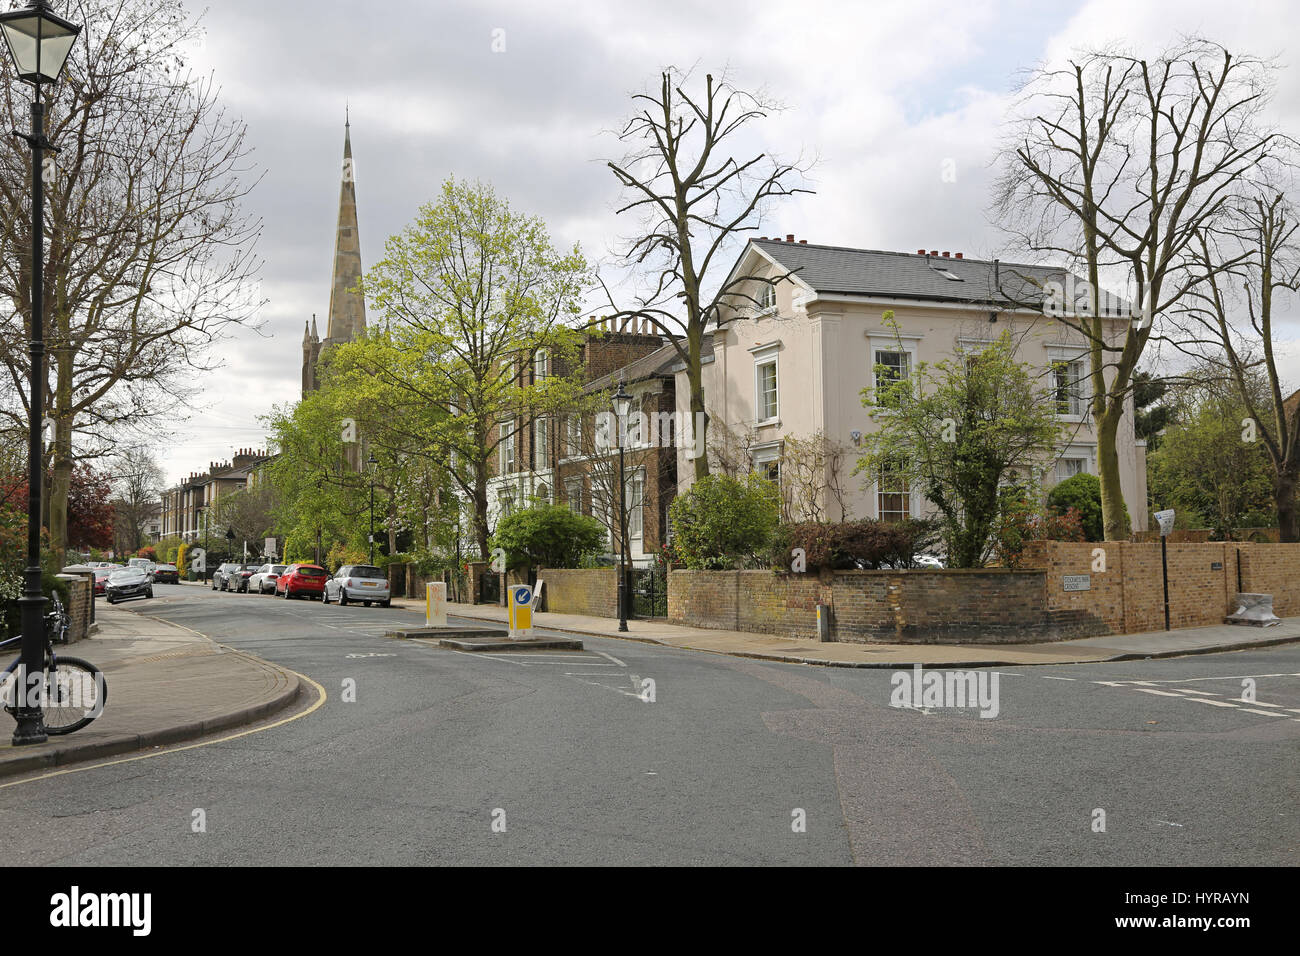 Houses and church on Stockwell Park Road, a famously elegant street in the increasingly popular inner city area - Stock Image